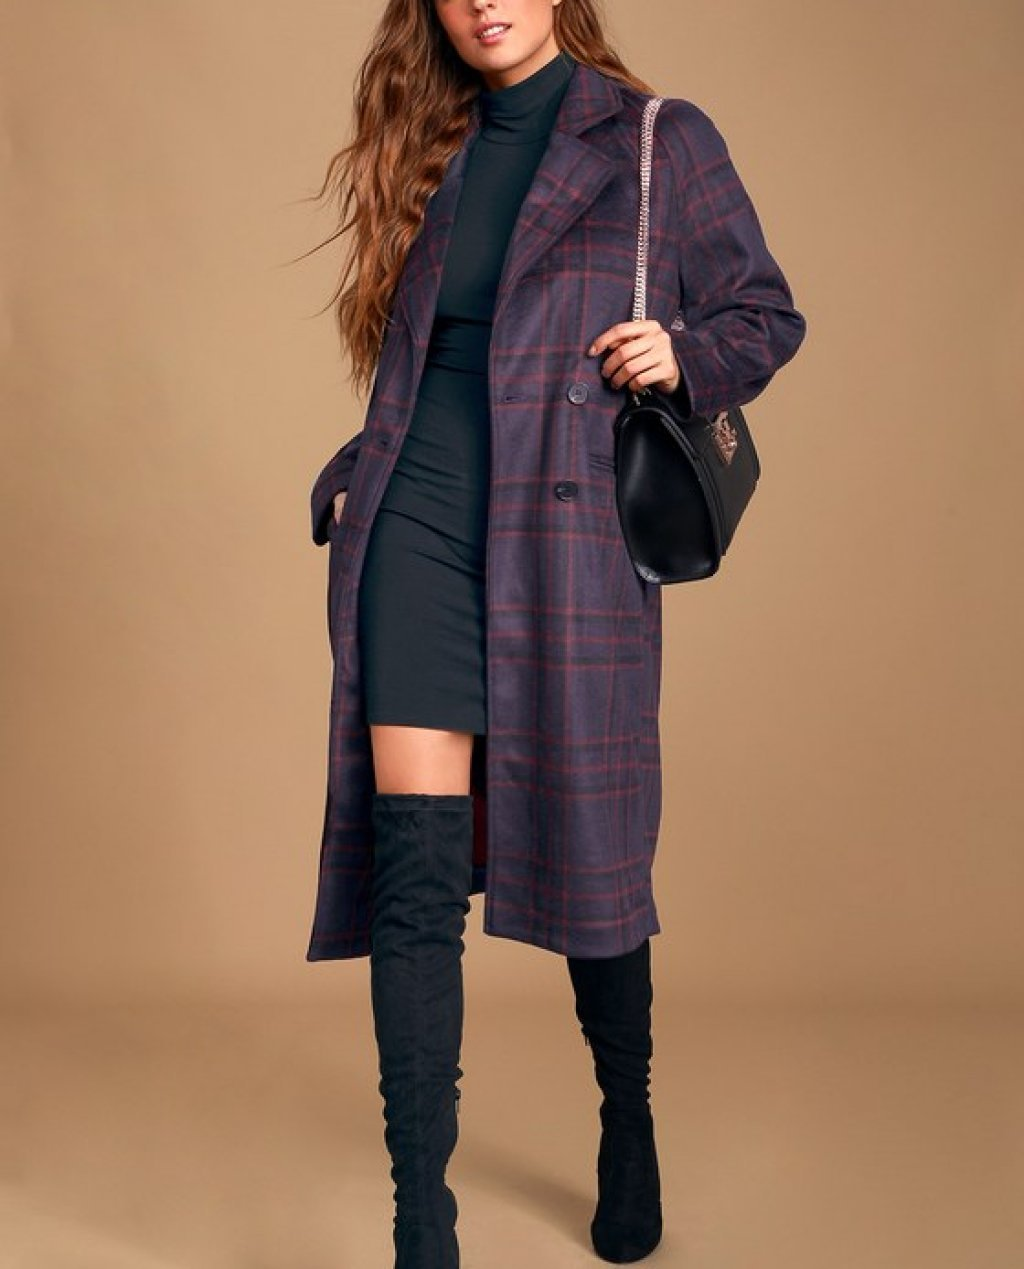 Karalissa Dark Purple Plaid Coat